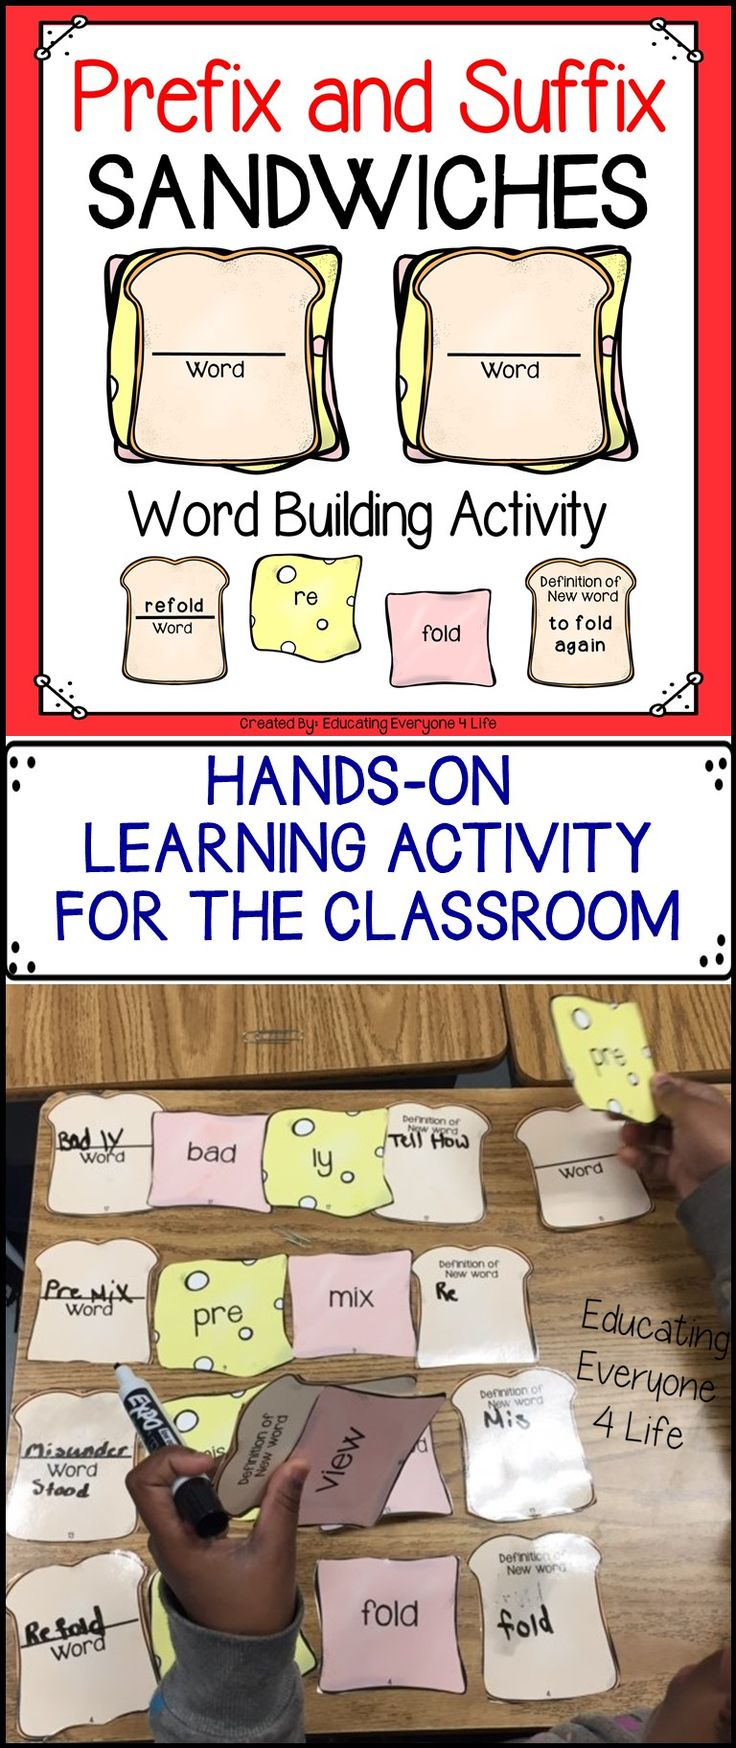 Worksheets and Activities - Prefixes and Suffixes ...